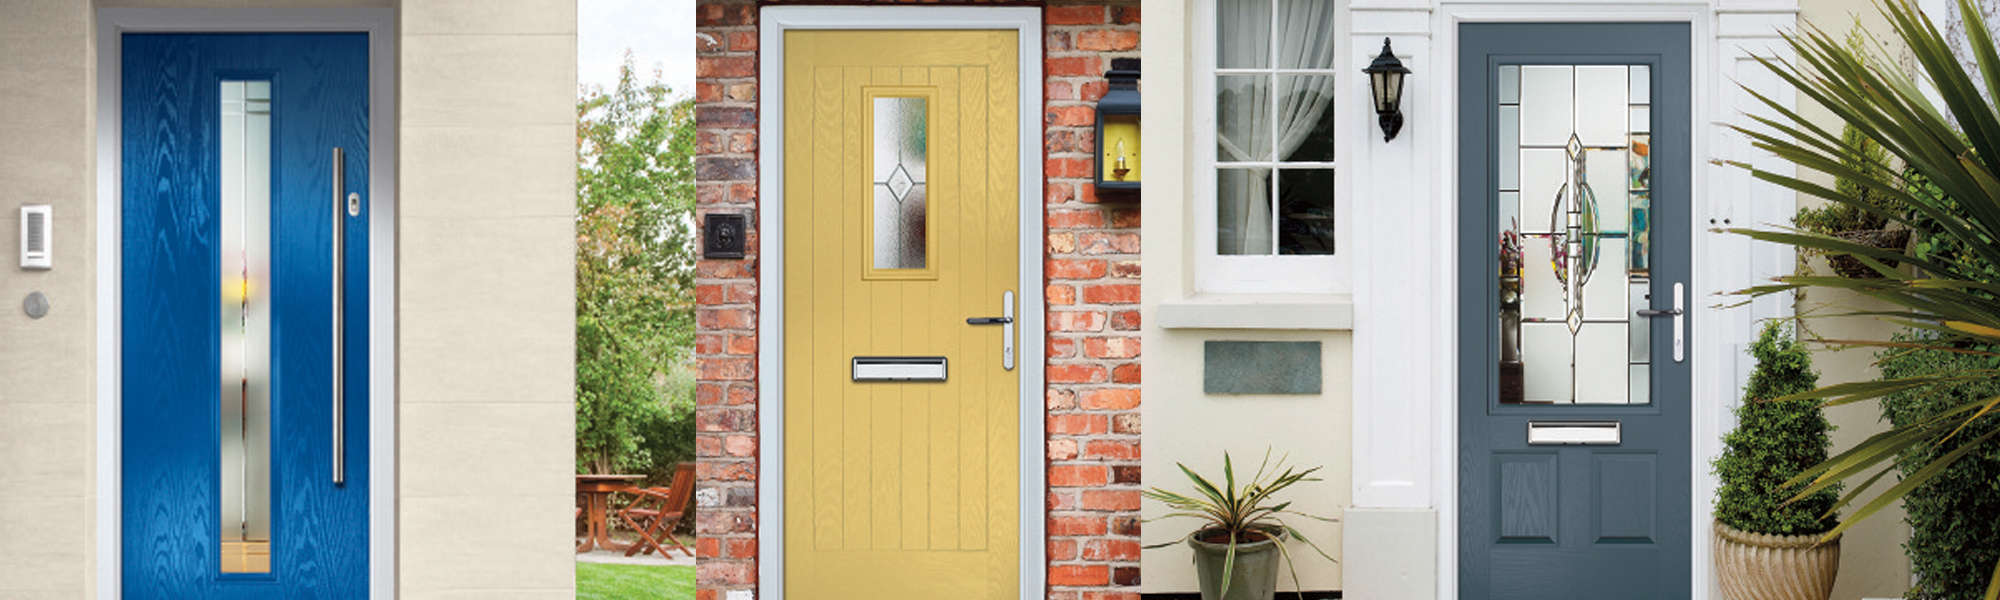 News & Bring a Splash of Colour to Your Home With A Composite Door in Derby